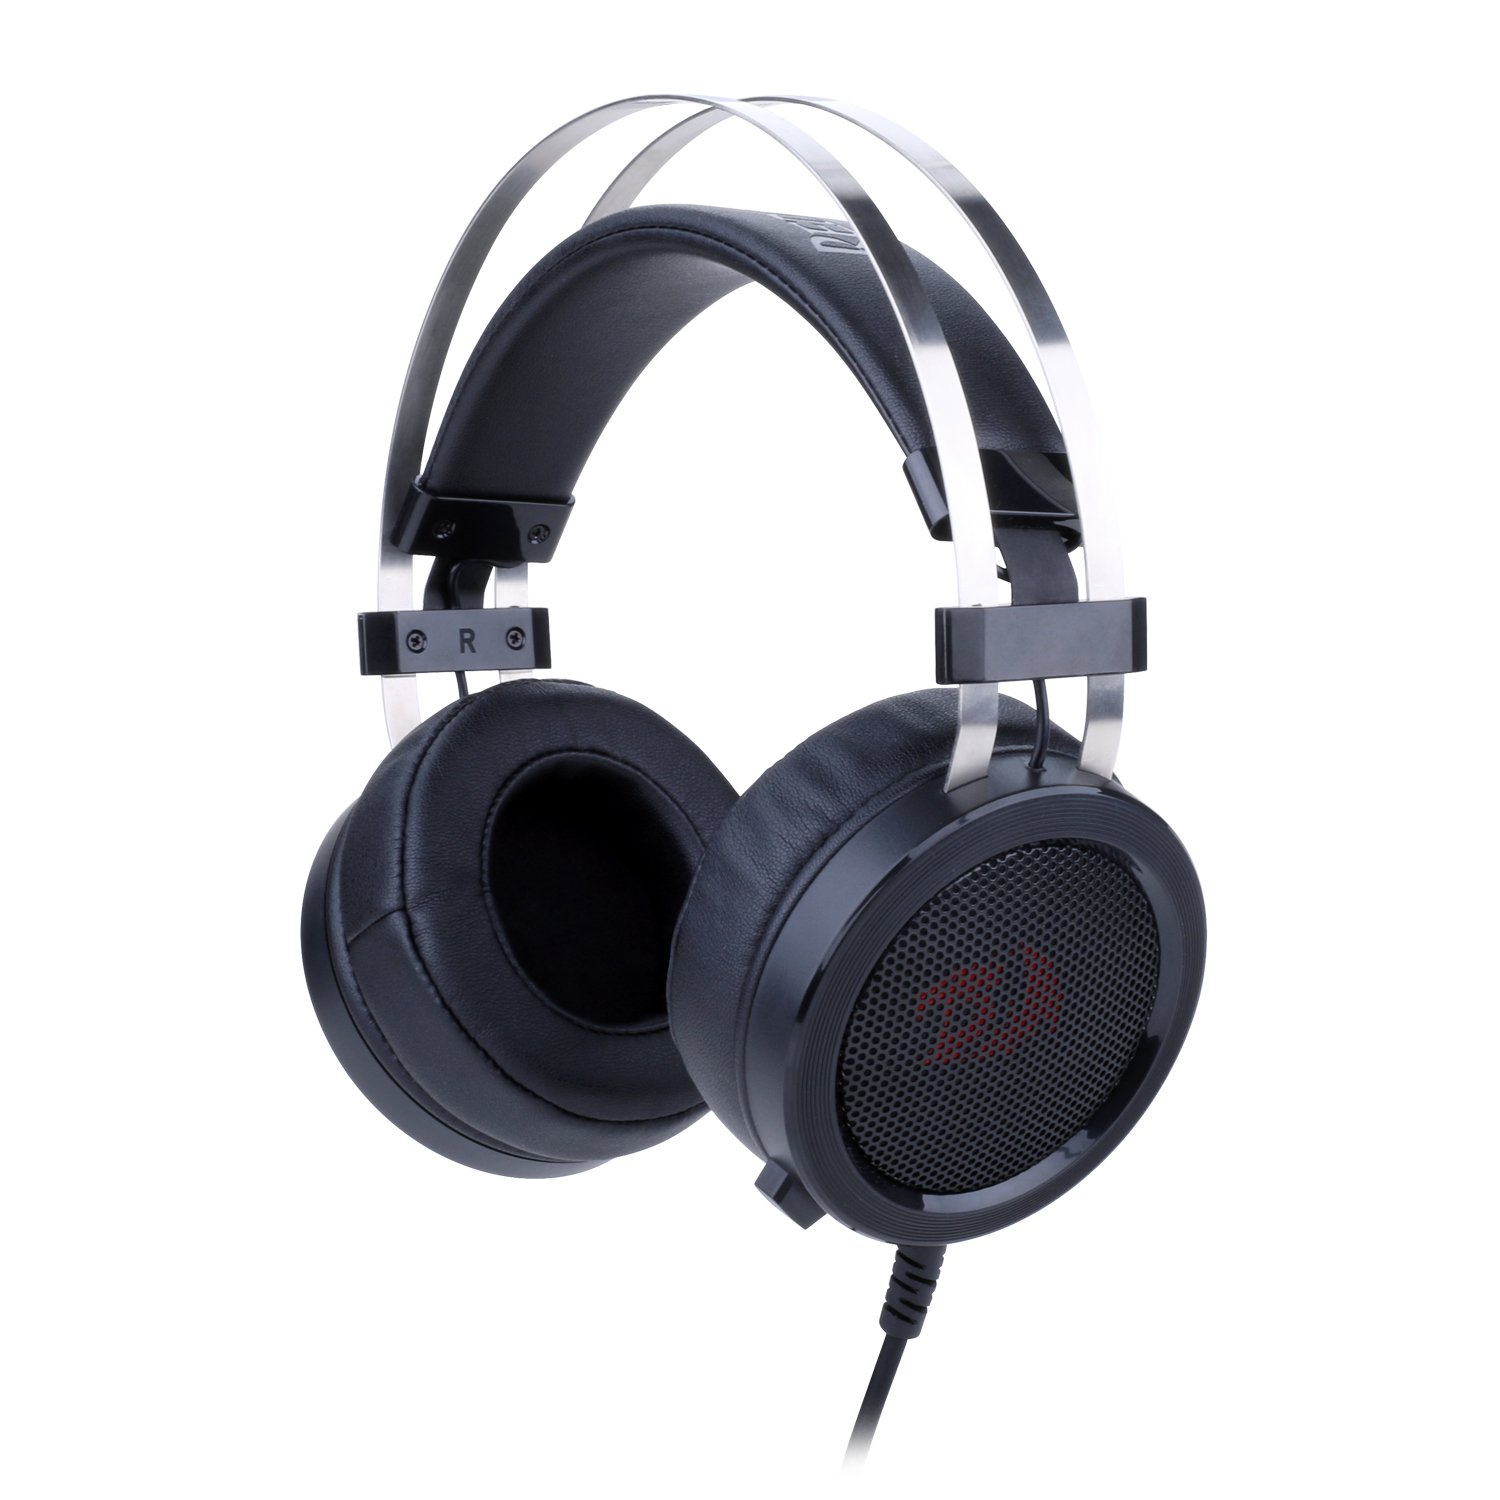 eba40be8aa88b8 Redragon H901 Gaming Headset with Microphone for PC, PC Gaming Headphones  with Mic and Built-in Noise Reduction Works with PC, Laptop, Tablet,  Playstation 4 ...